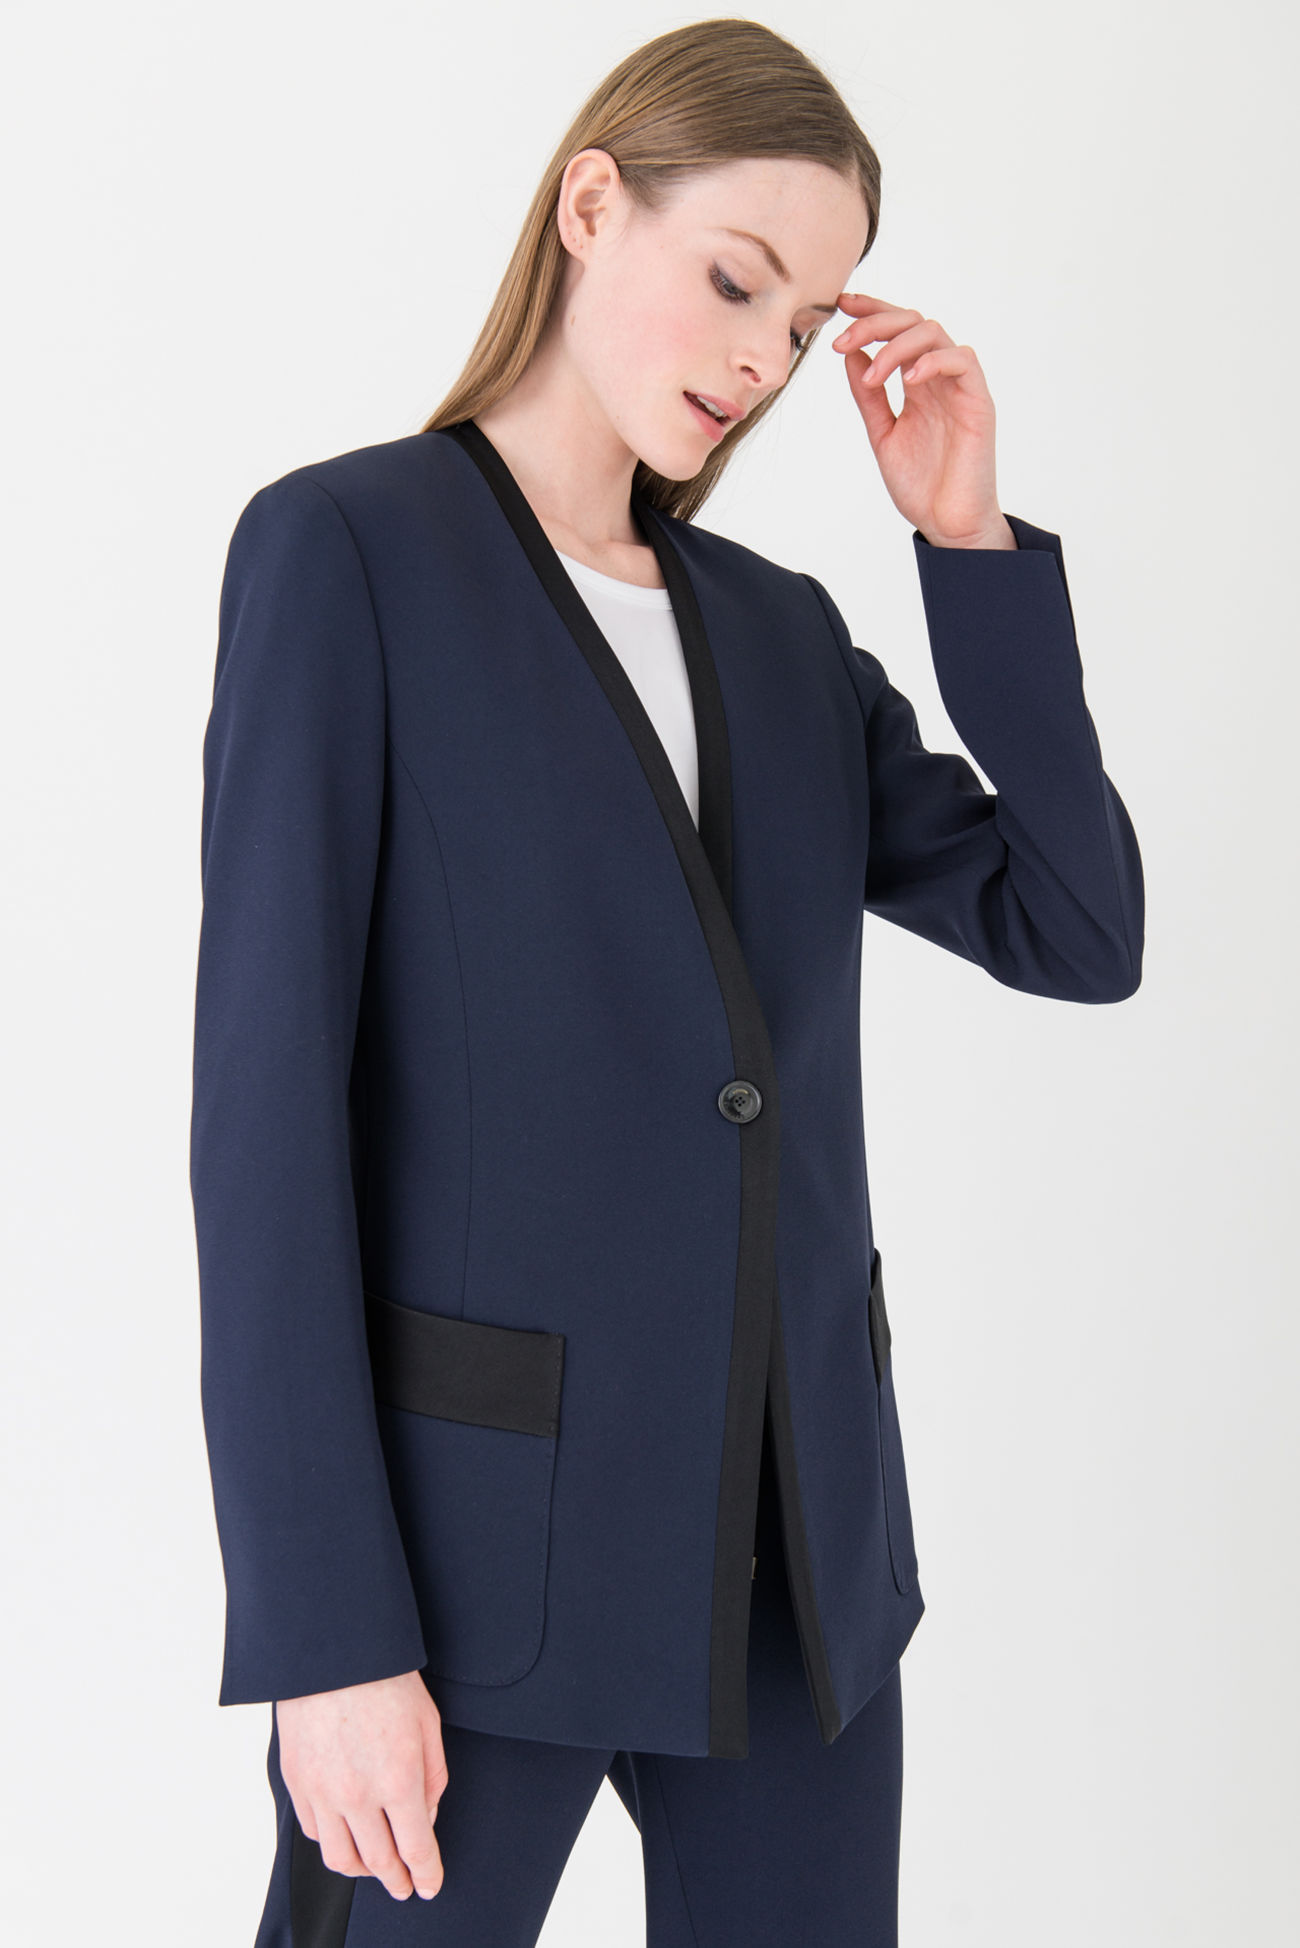 Exquisite crêpe blazer in a dandy style